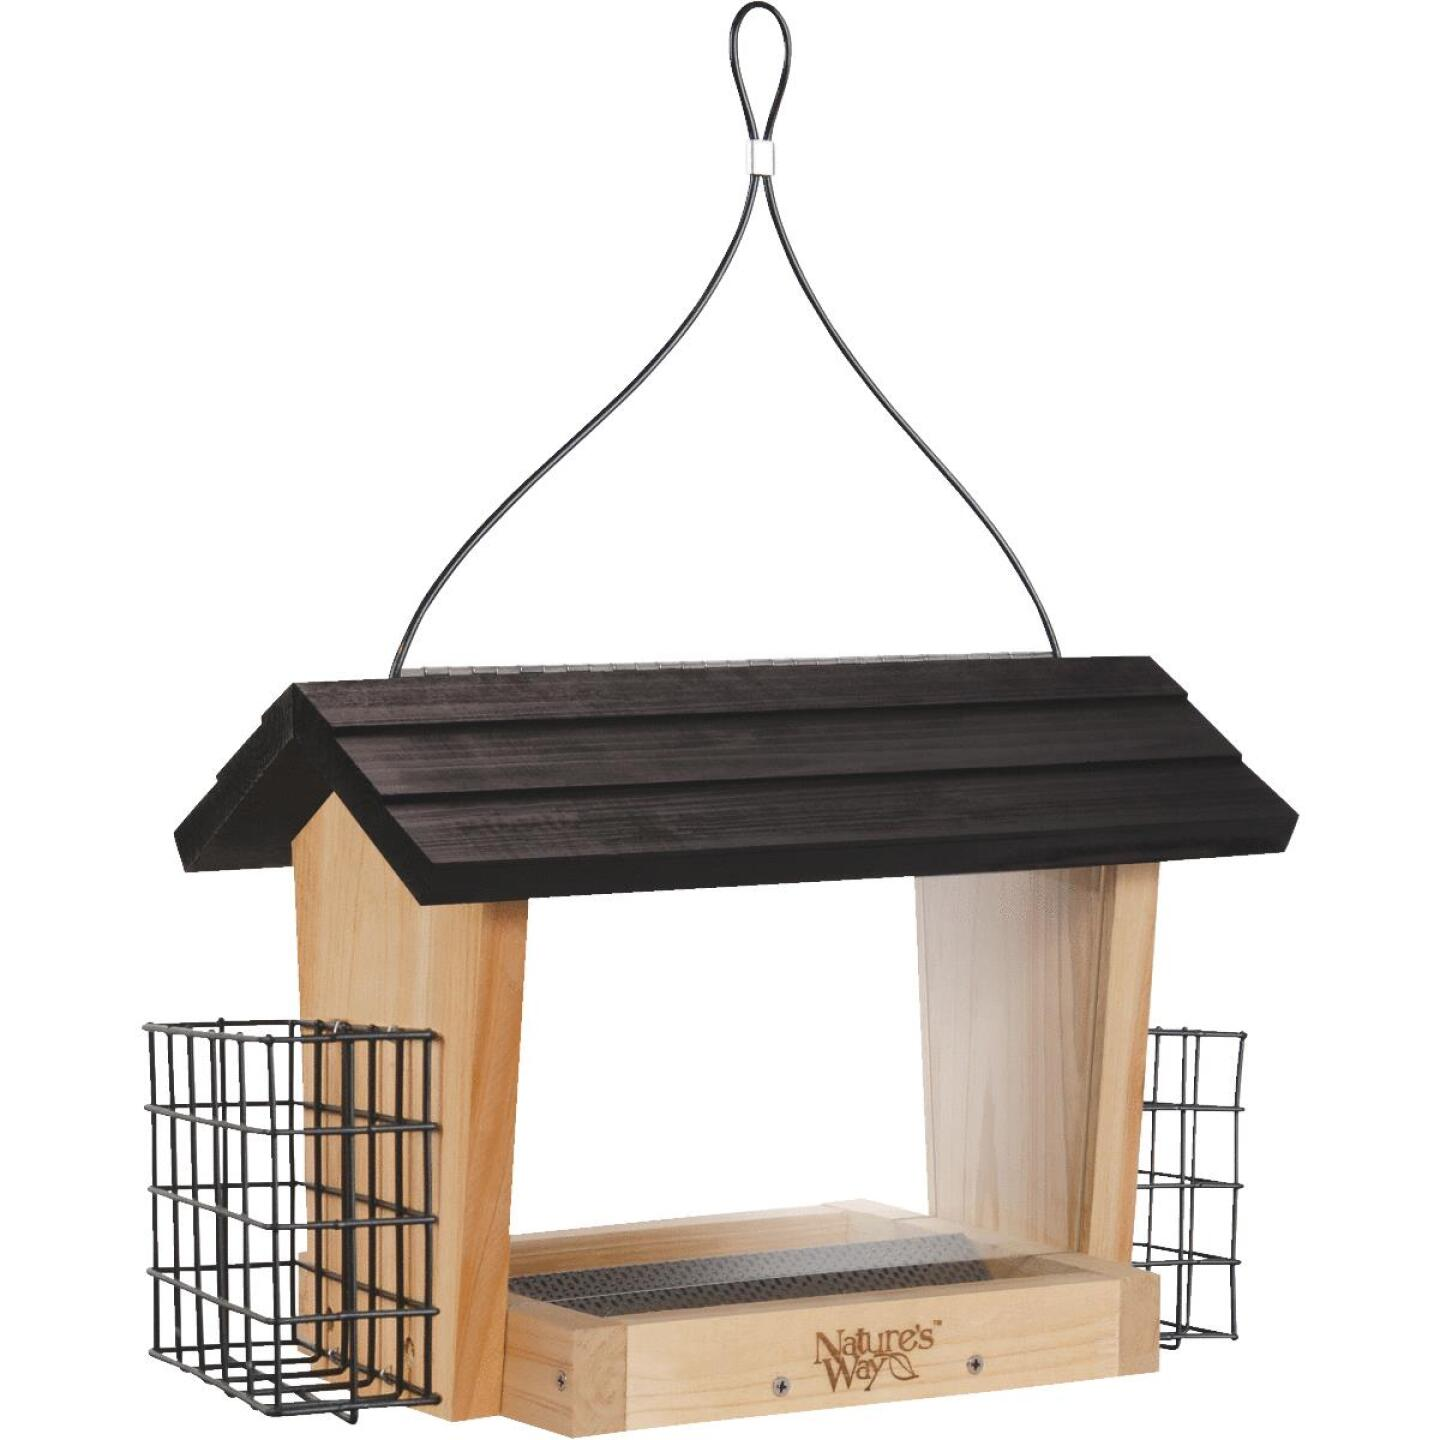 Nature's Way 6 Qt. Natural Cedar Hopper Bird Feeder with Suet Cages Image 1